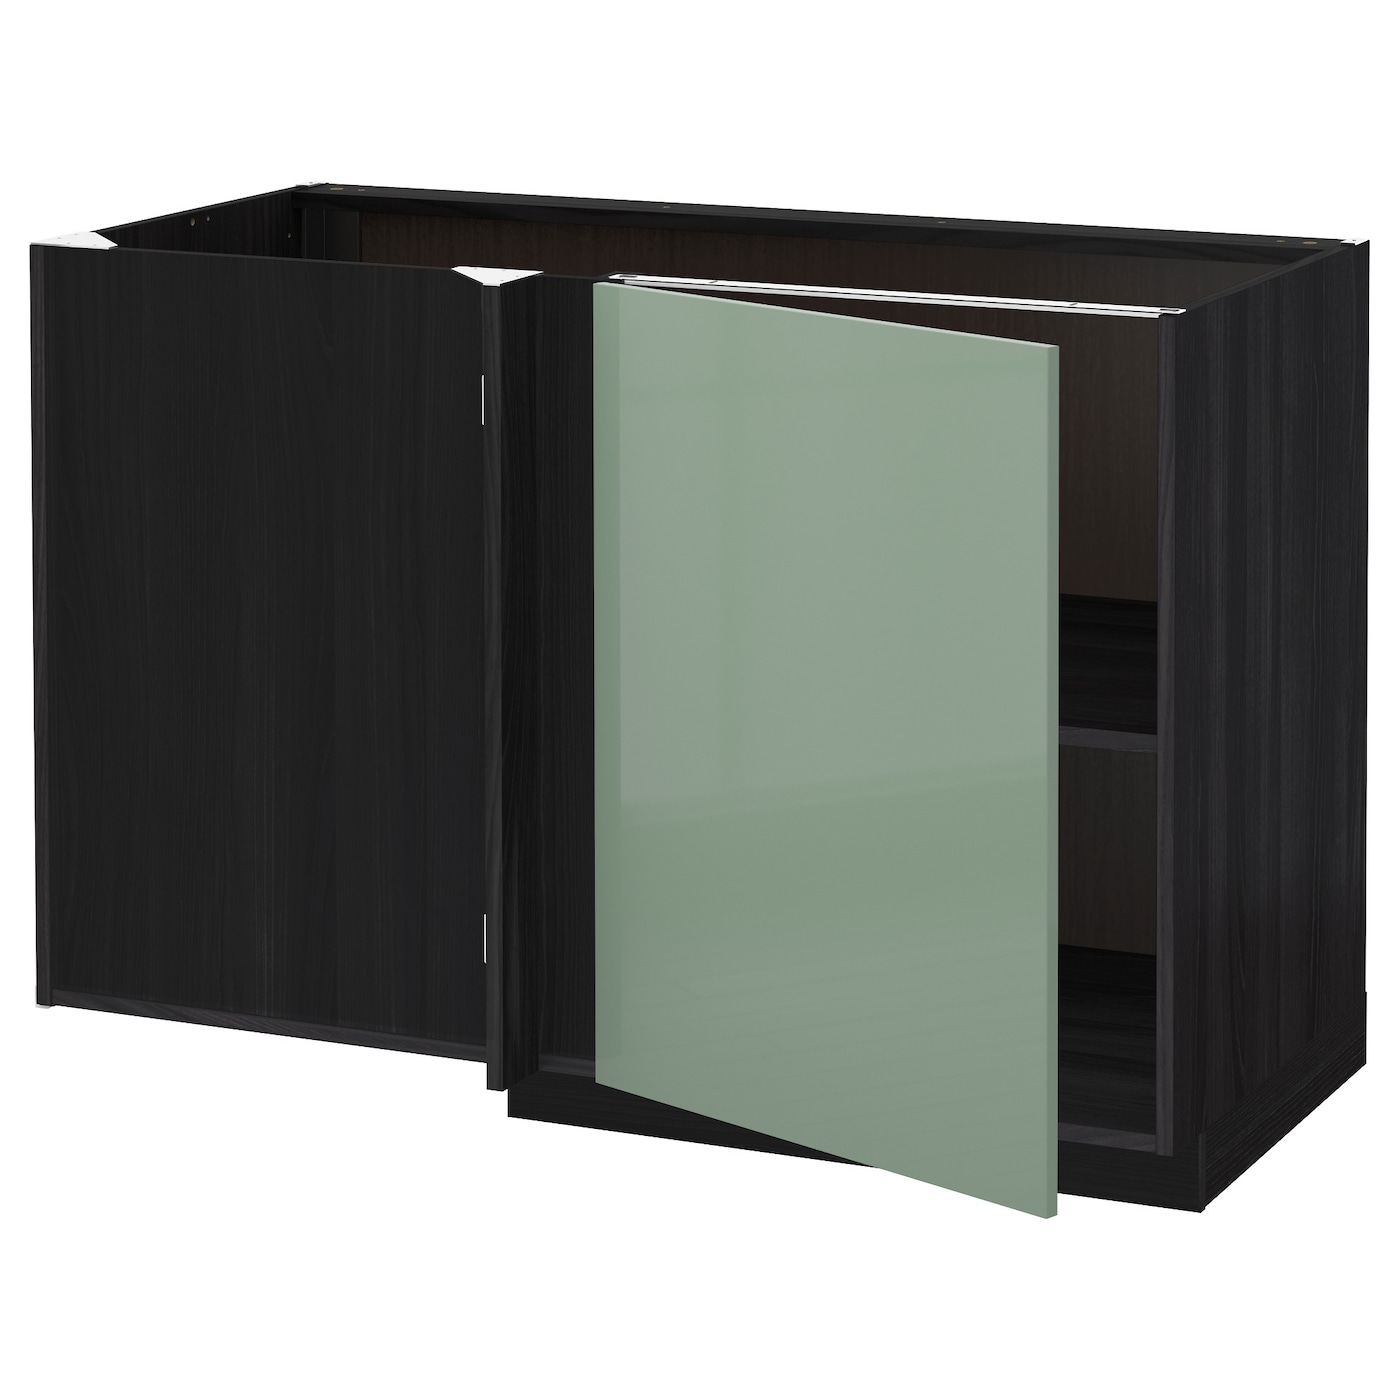 Metod Corner Base Cabinet With Shelf Black Kallarp Light Green 128x68 Cm Ikea